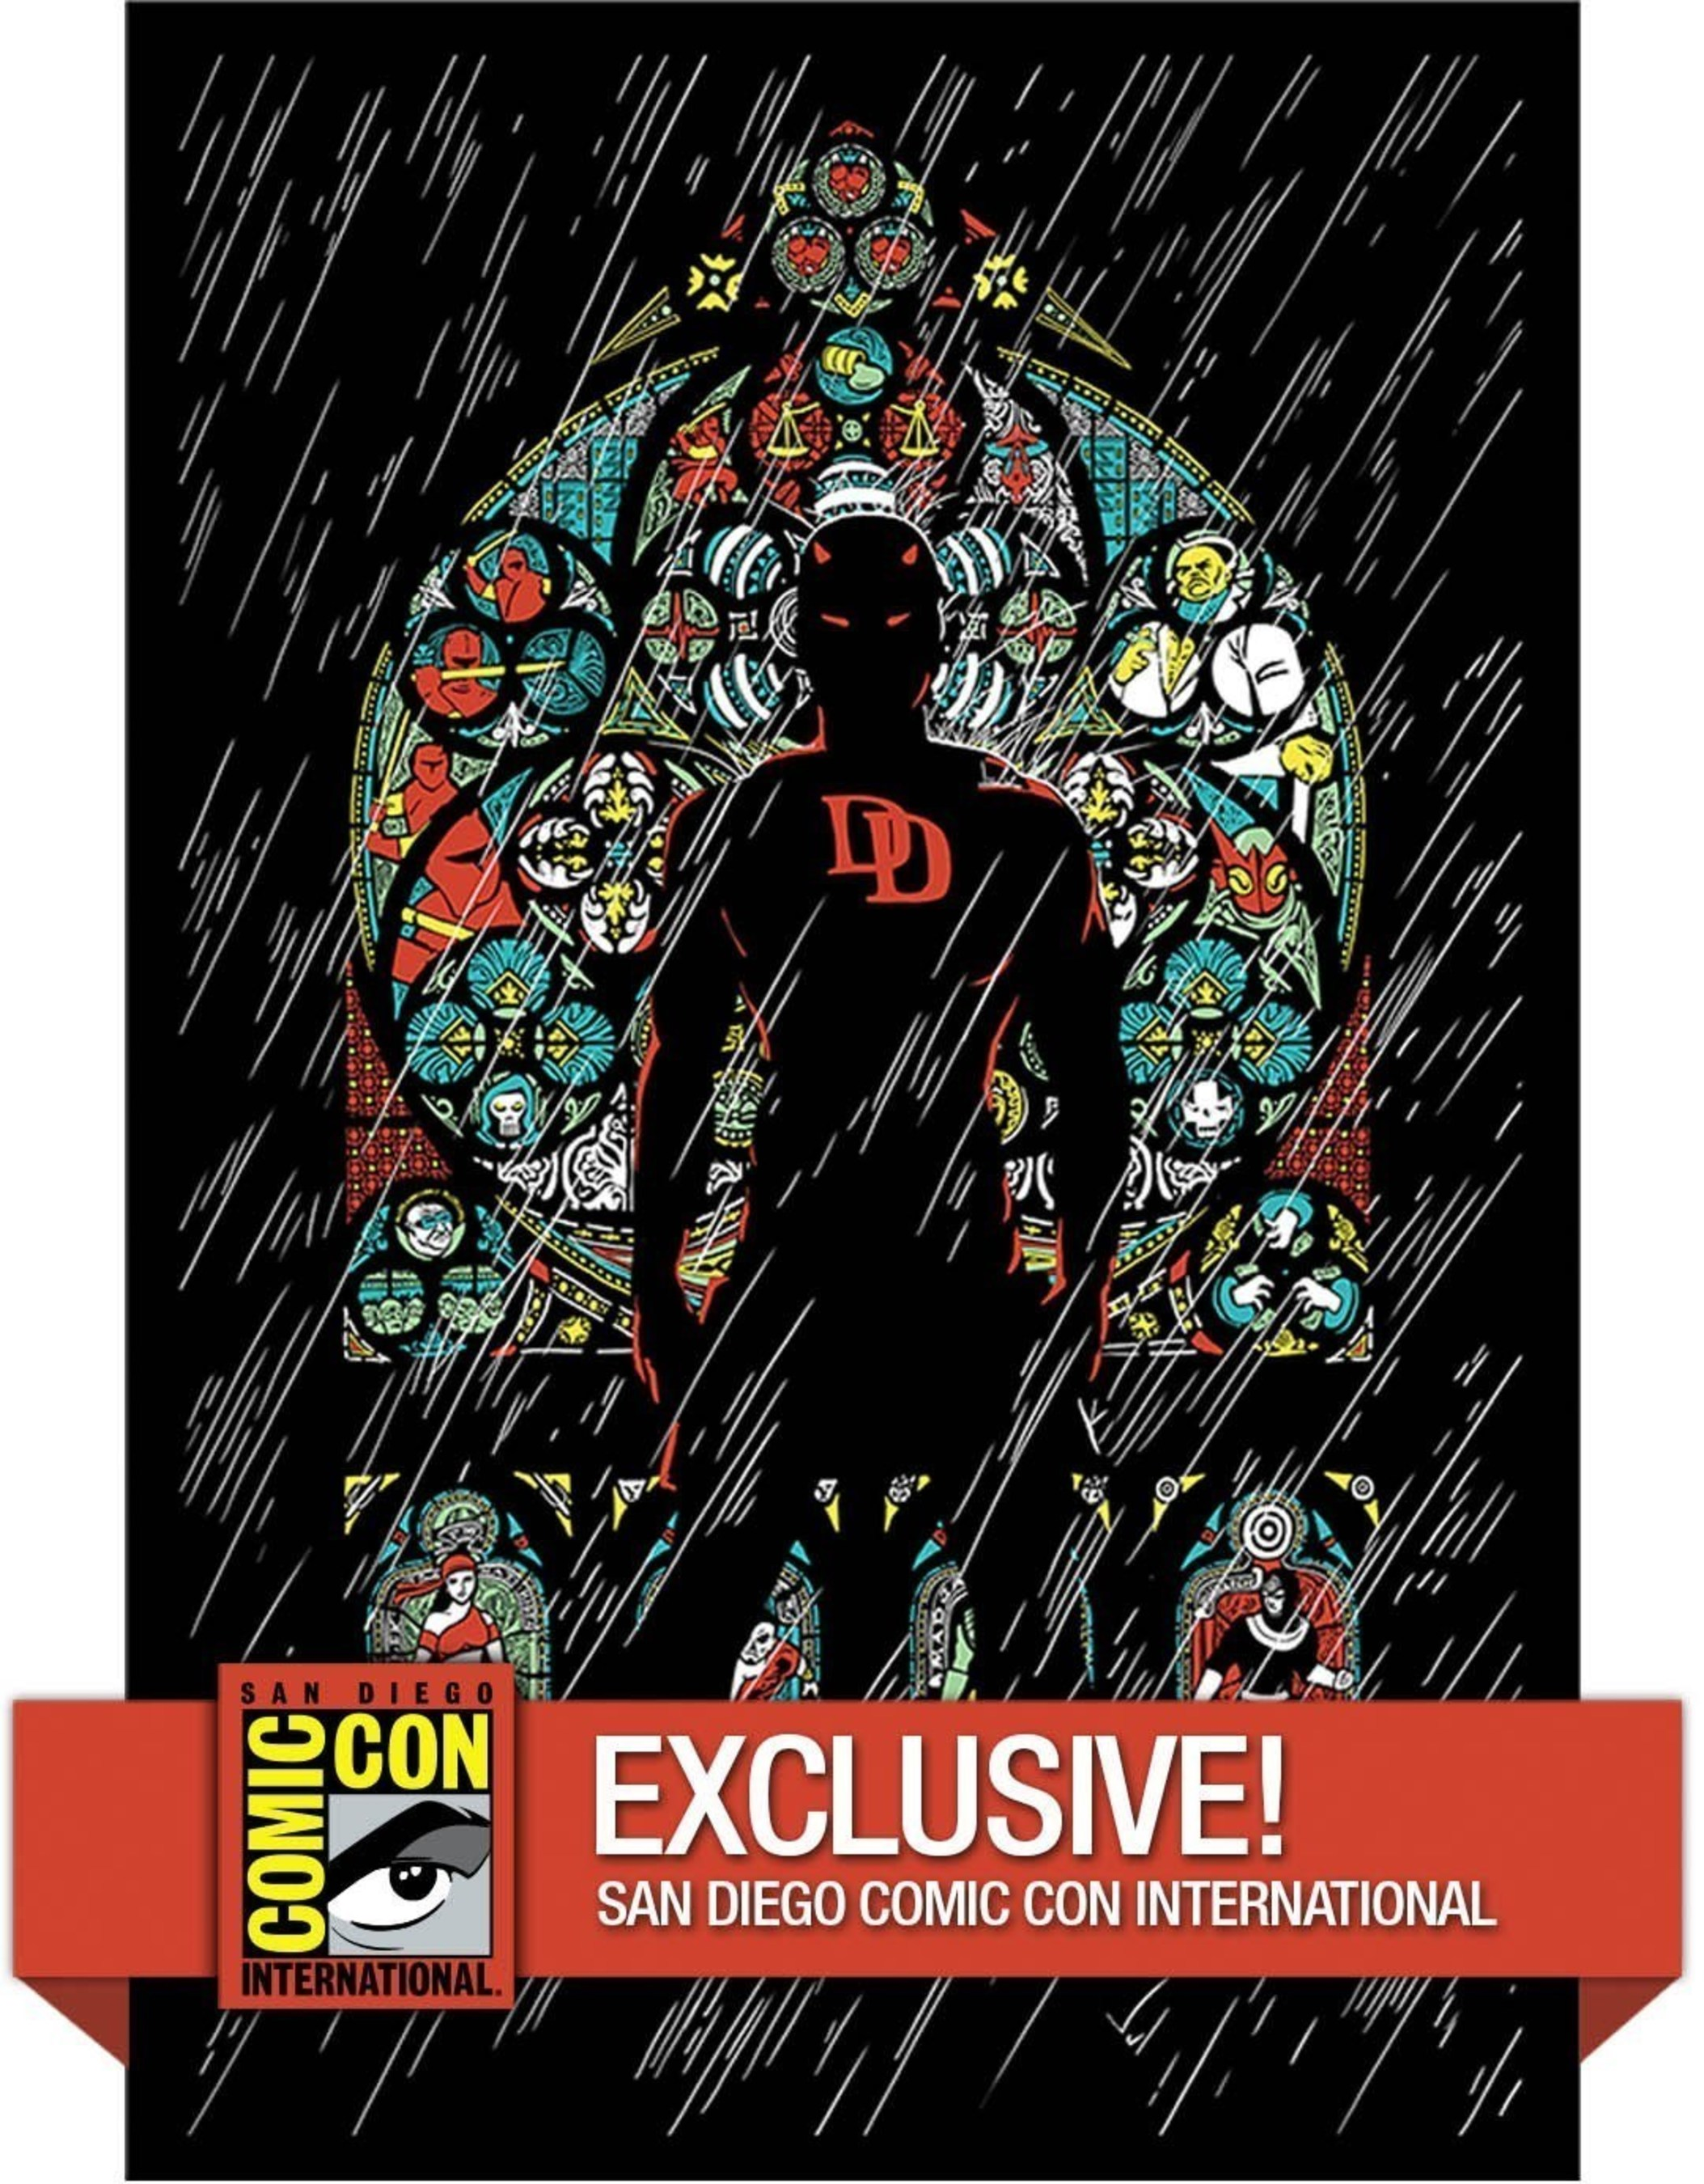 Upper Deck Authenticated is rolling out a new line of premium posters featuring original art from top comic artists as part of the company's new UpperDeckGallery.com website. Fans can capture the Marvel Daredevil exclusive variant poster at Comic-Con International this week at the Upper Deck booth. The standard version without the color background is available on UpperDeckGallery.com.